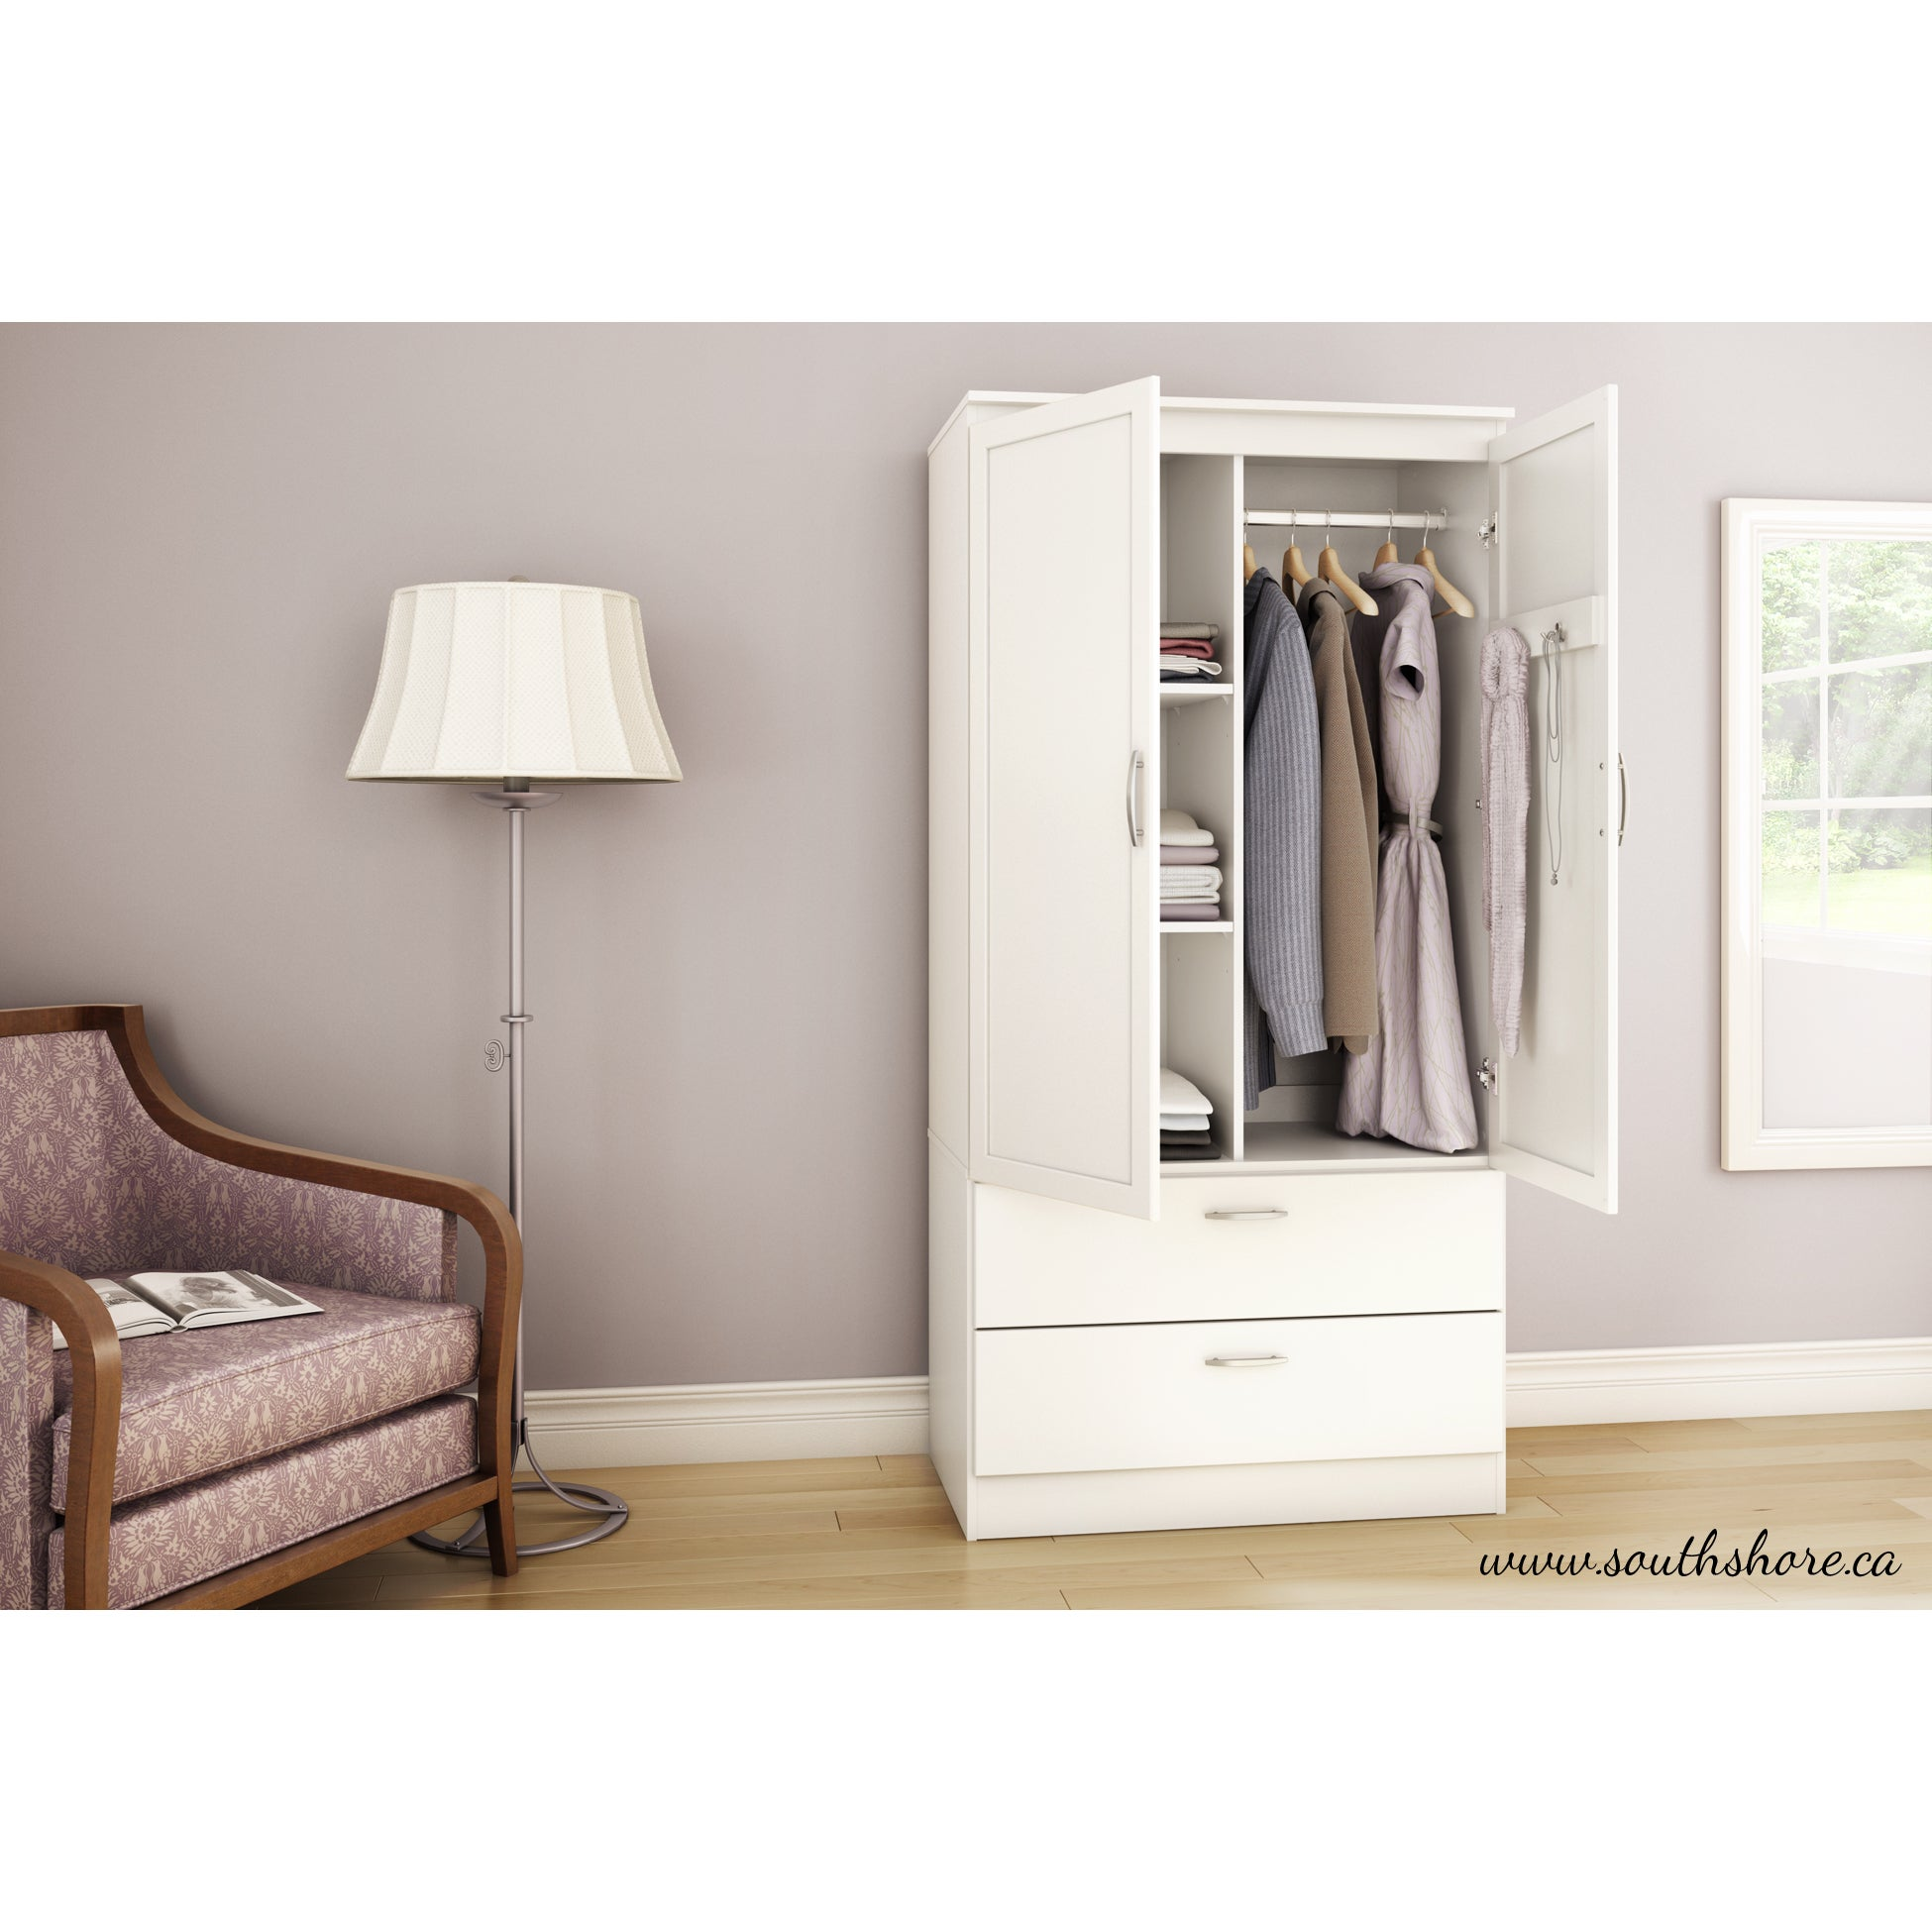 Incroyable South Shore Acapella Wardrobe Armoire   Free Shipping Today   Overstock.com    18157358